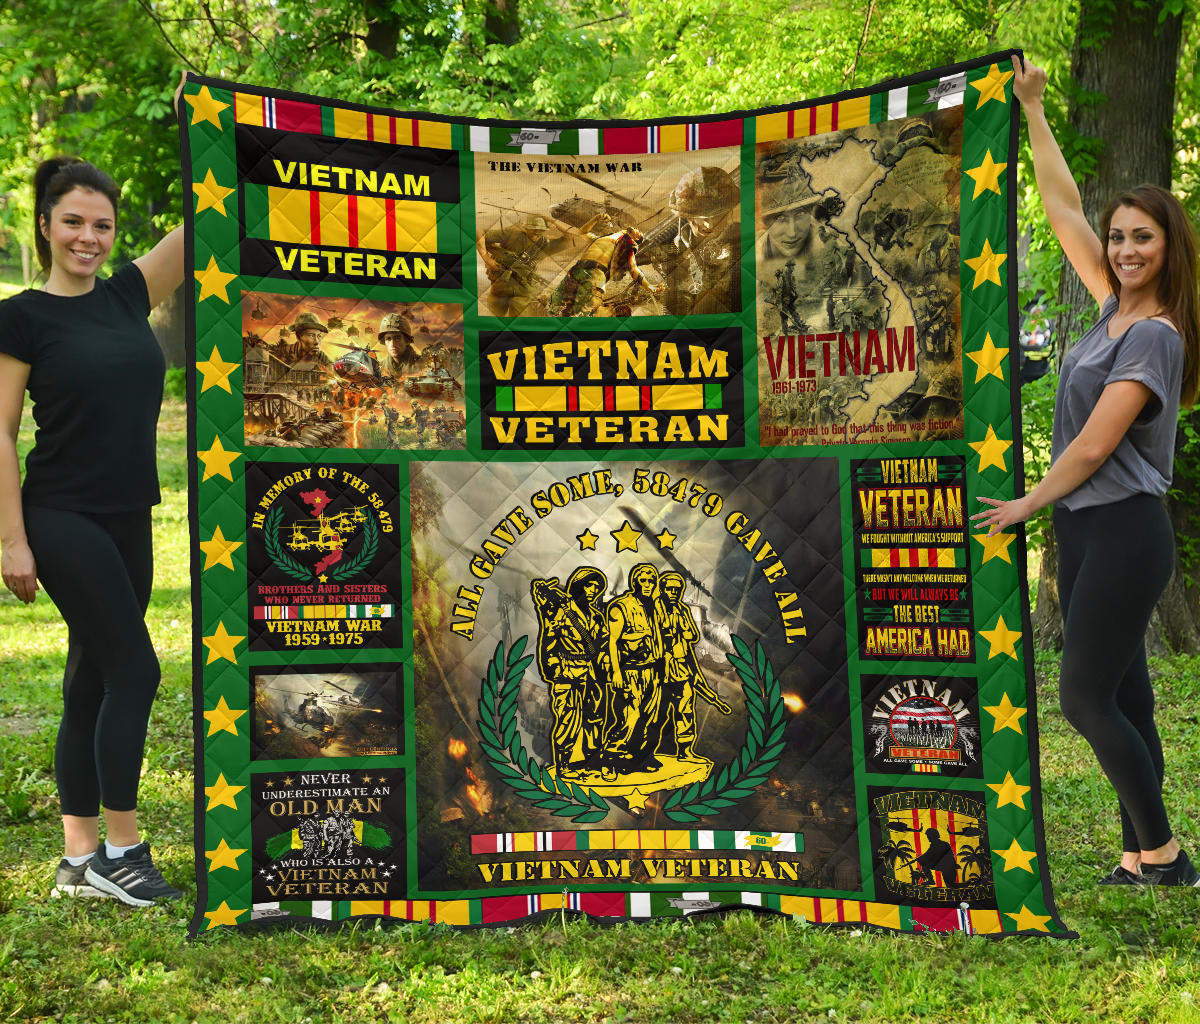 All gave some, 58479 gave some Vietnam veteran... Quilt